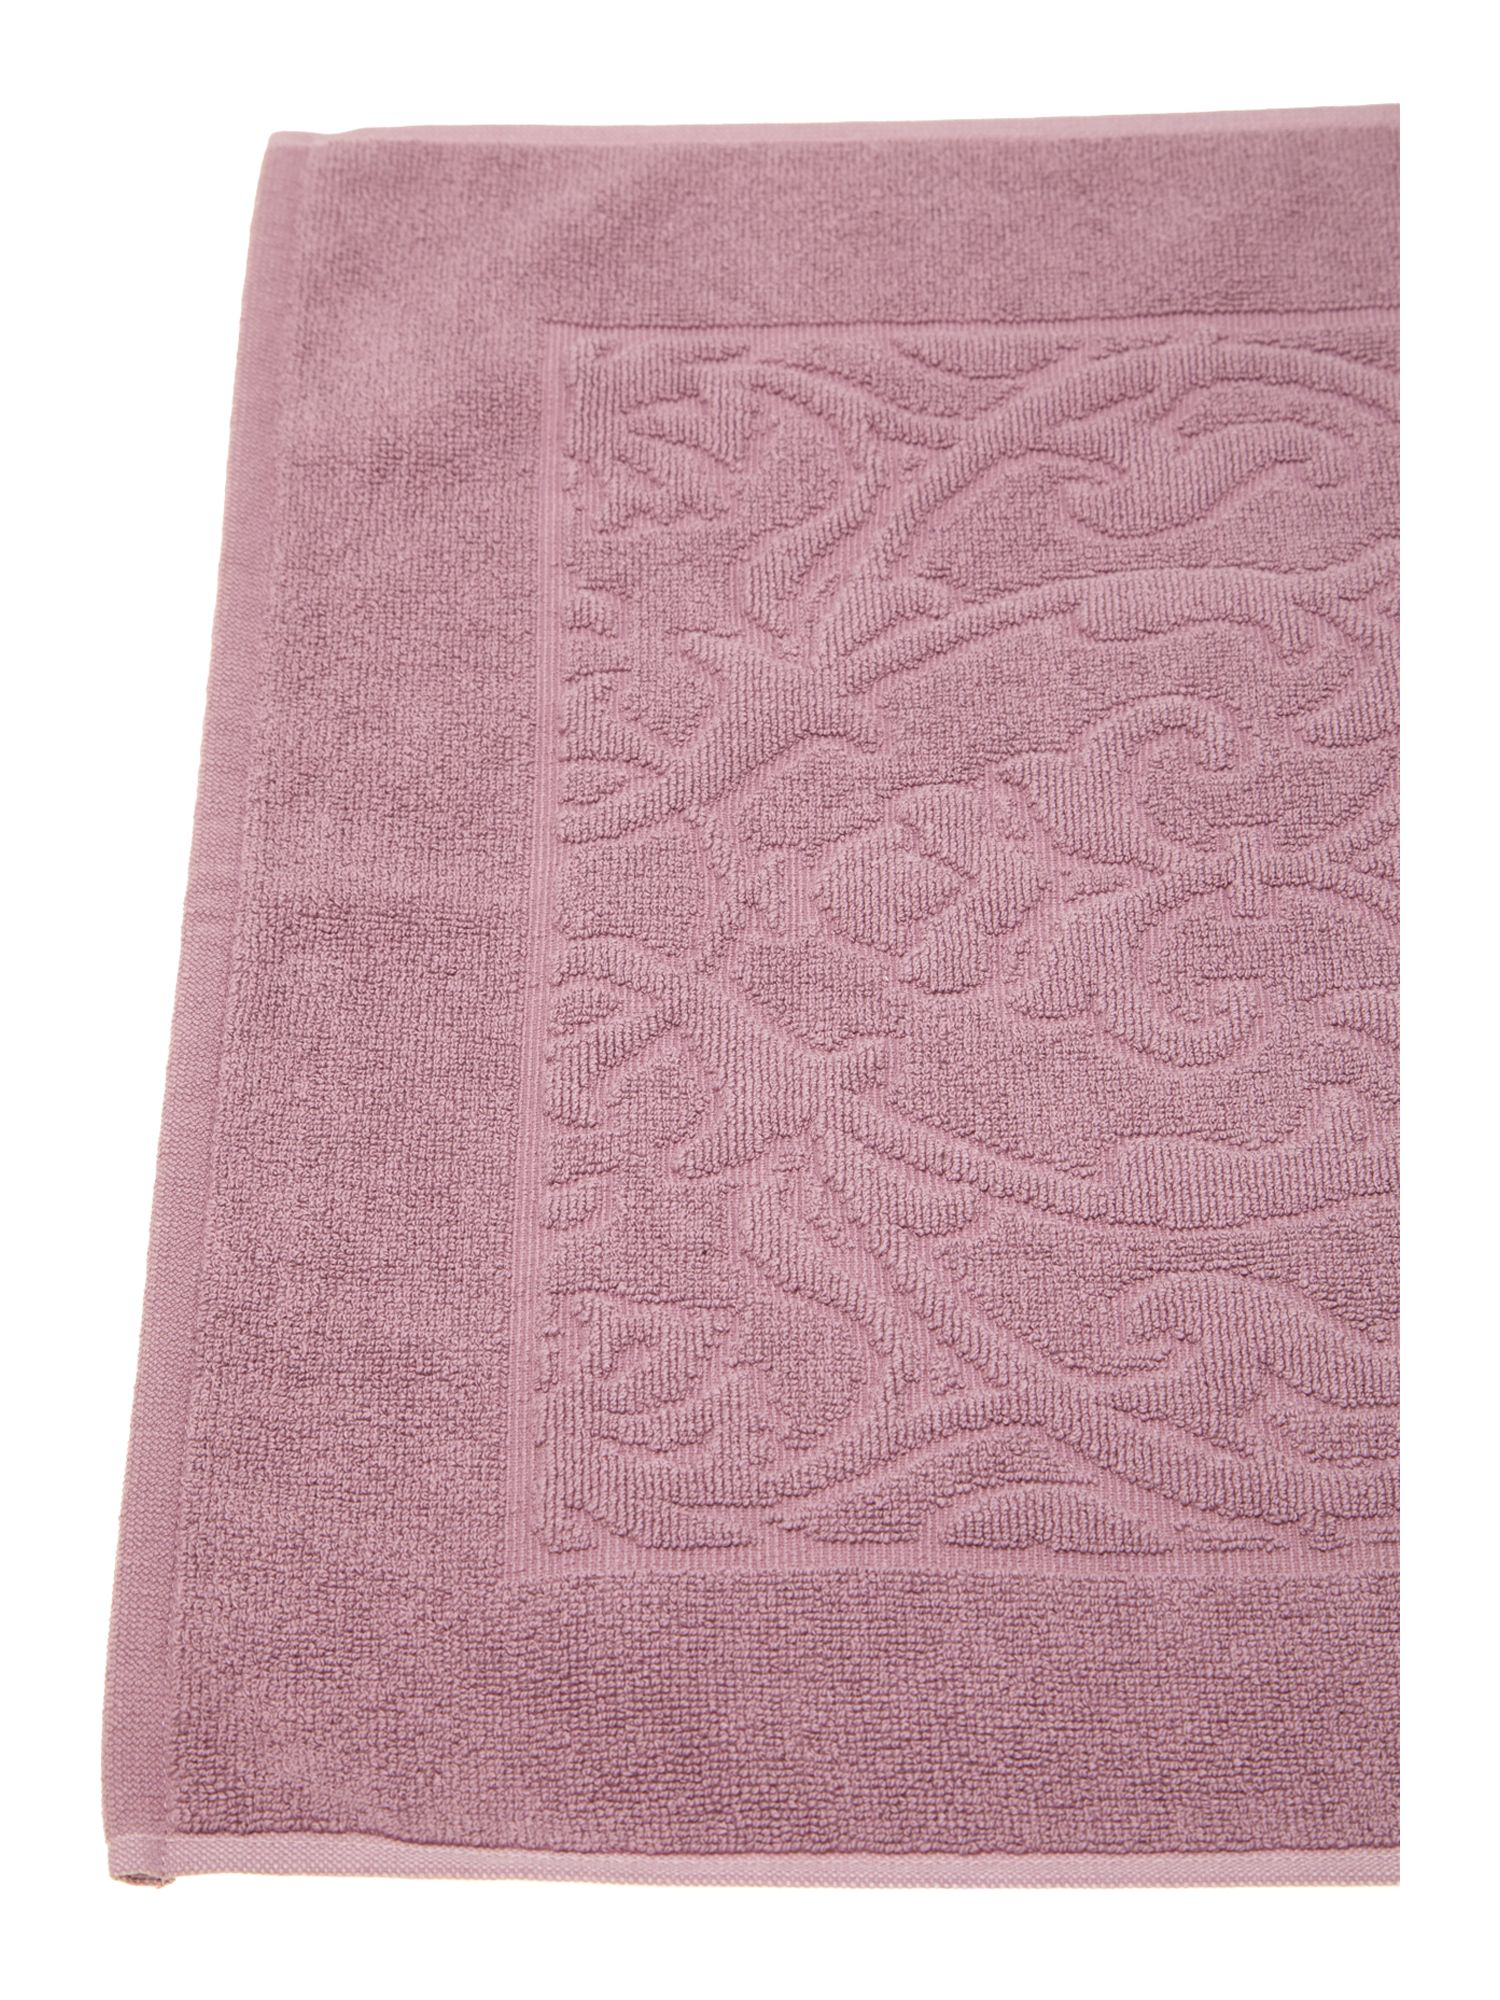 Heavy jacquard bath mat in orchid